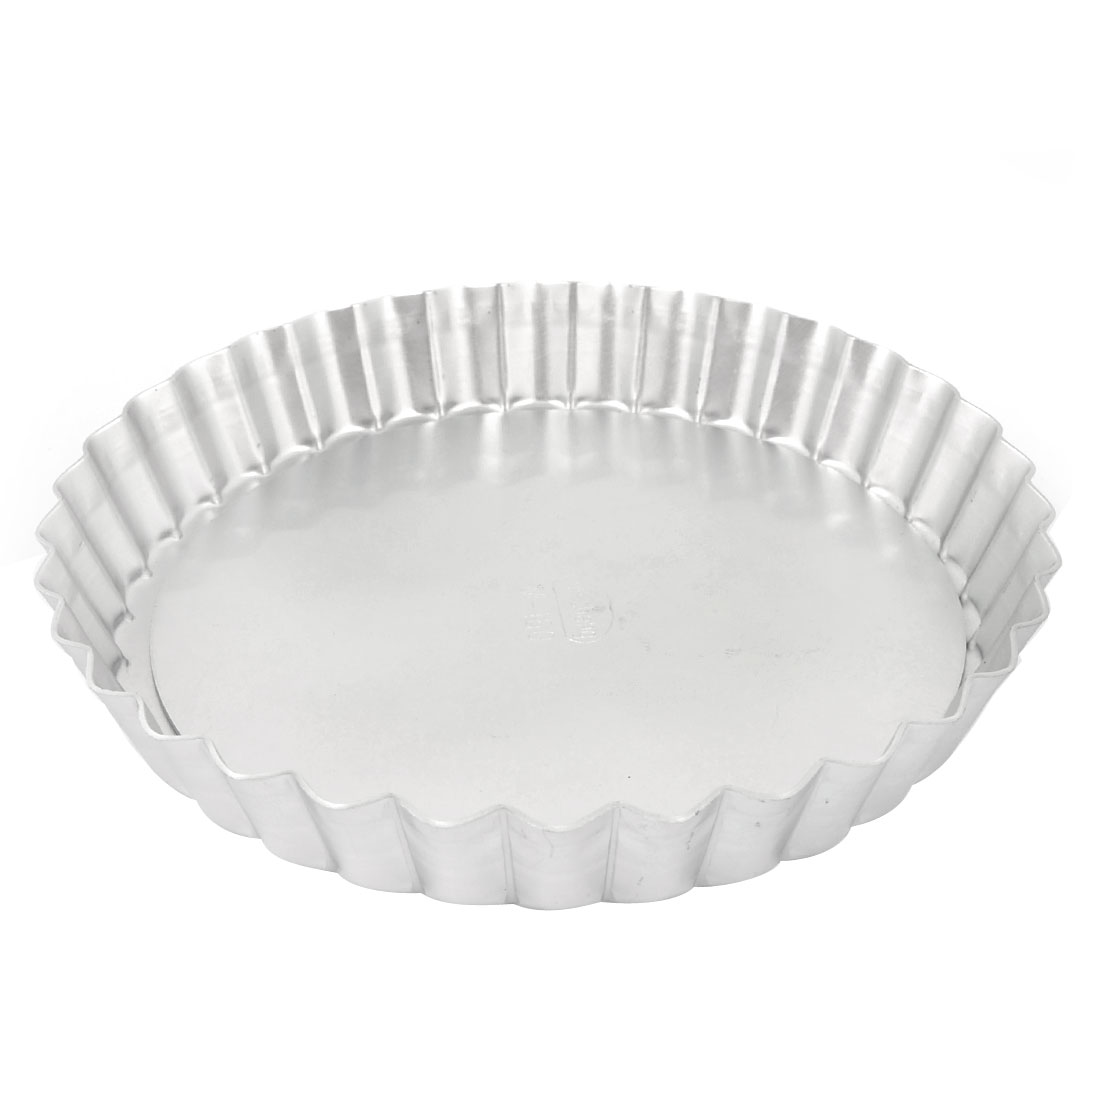 "Christmas DIY Cake Maker Round Shape Flower Rim Silver Tone Alloy Cook Tool Pan Mold Mould 6"" Dia"